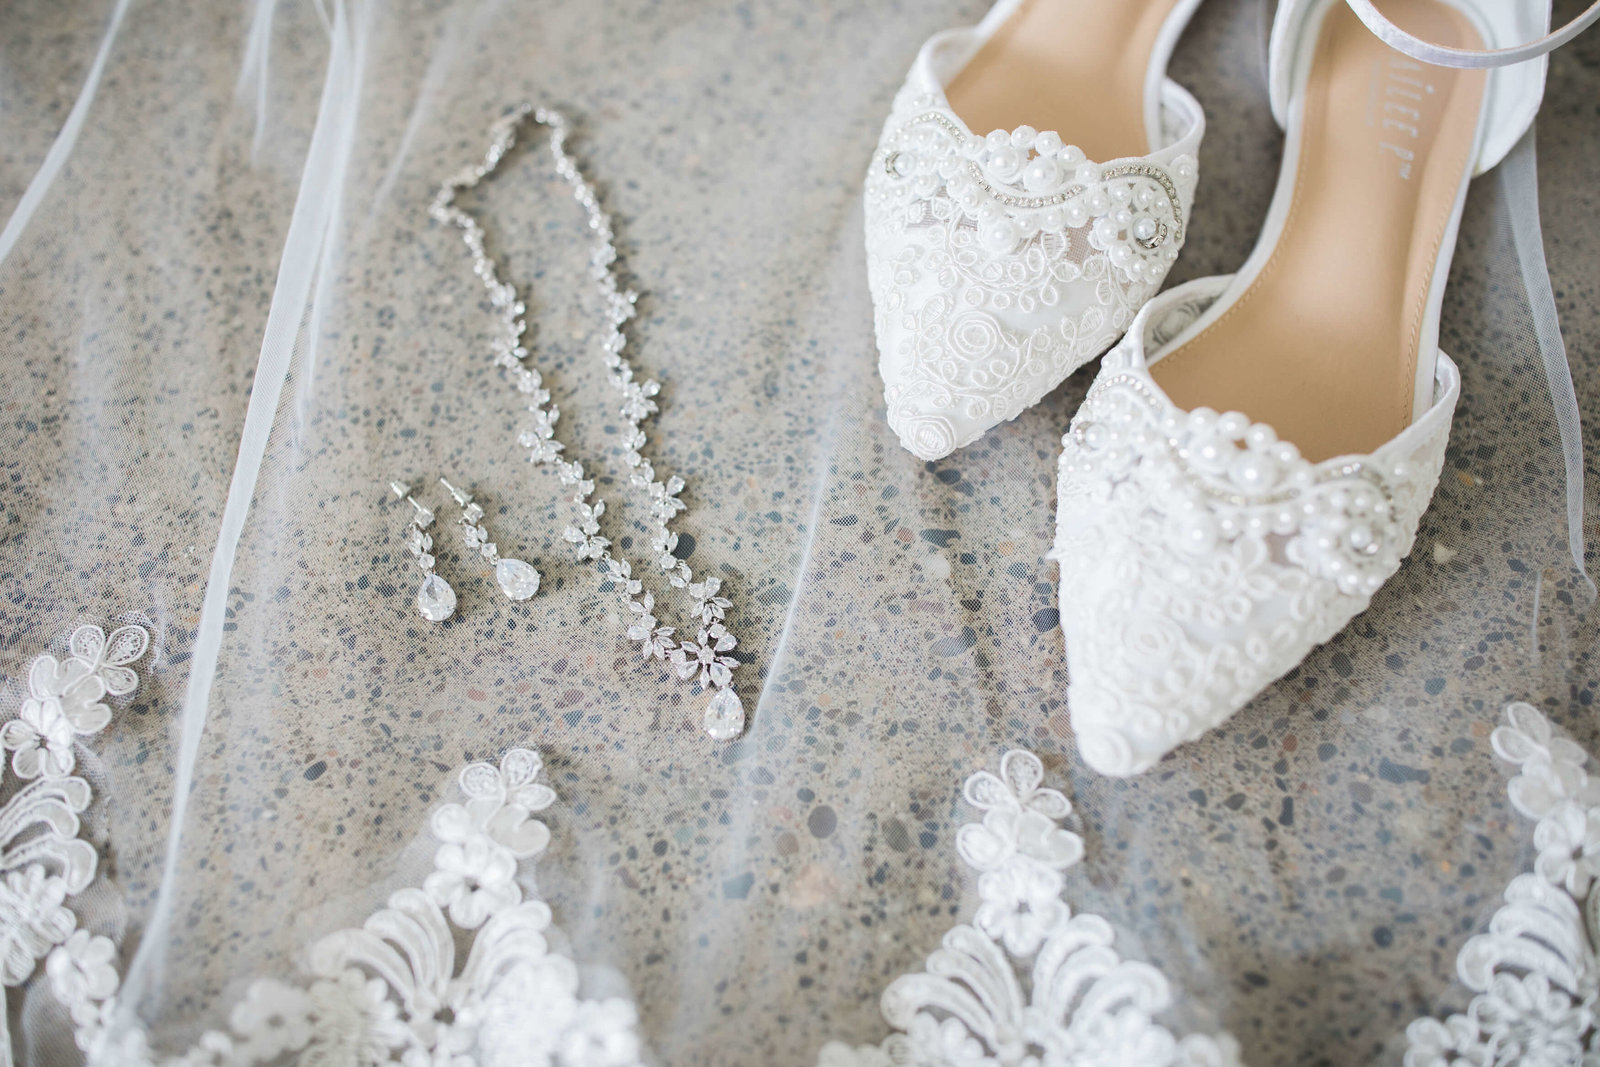 wedding-details-by-adina-preston-photography-38